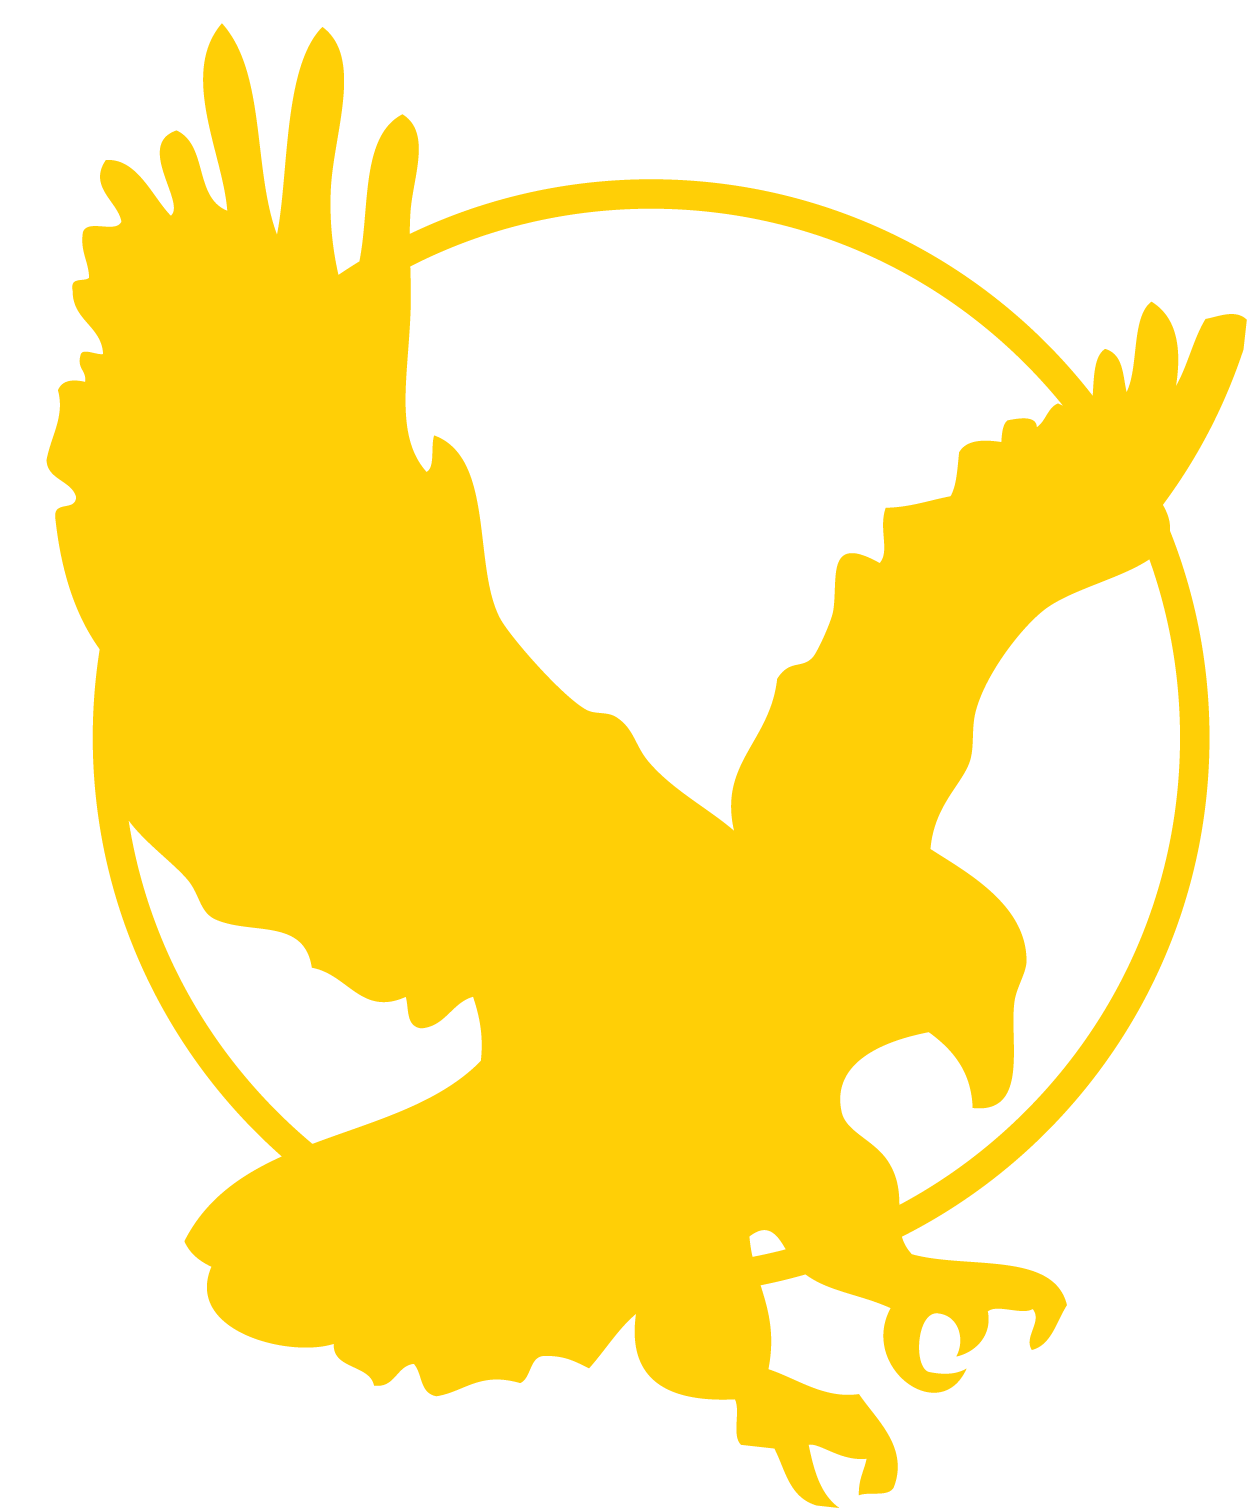 Golden Eagle clipart #4, Download drawings